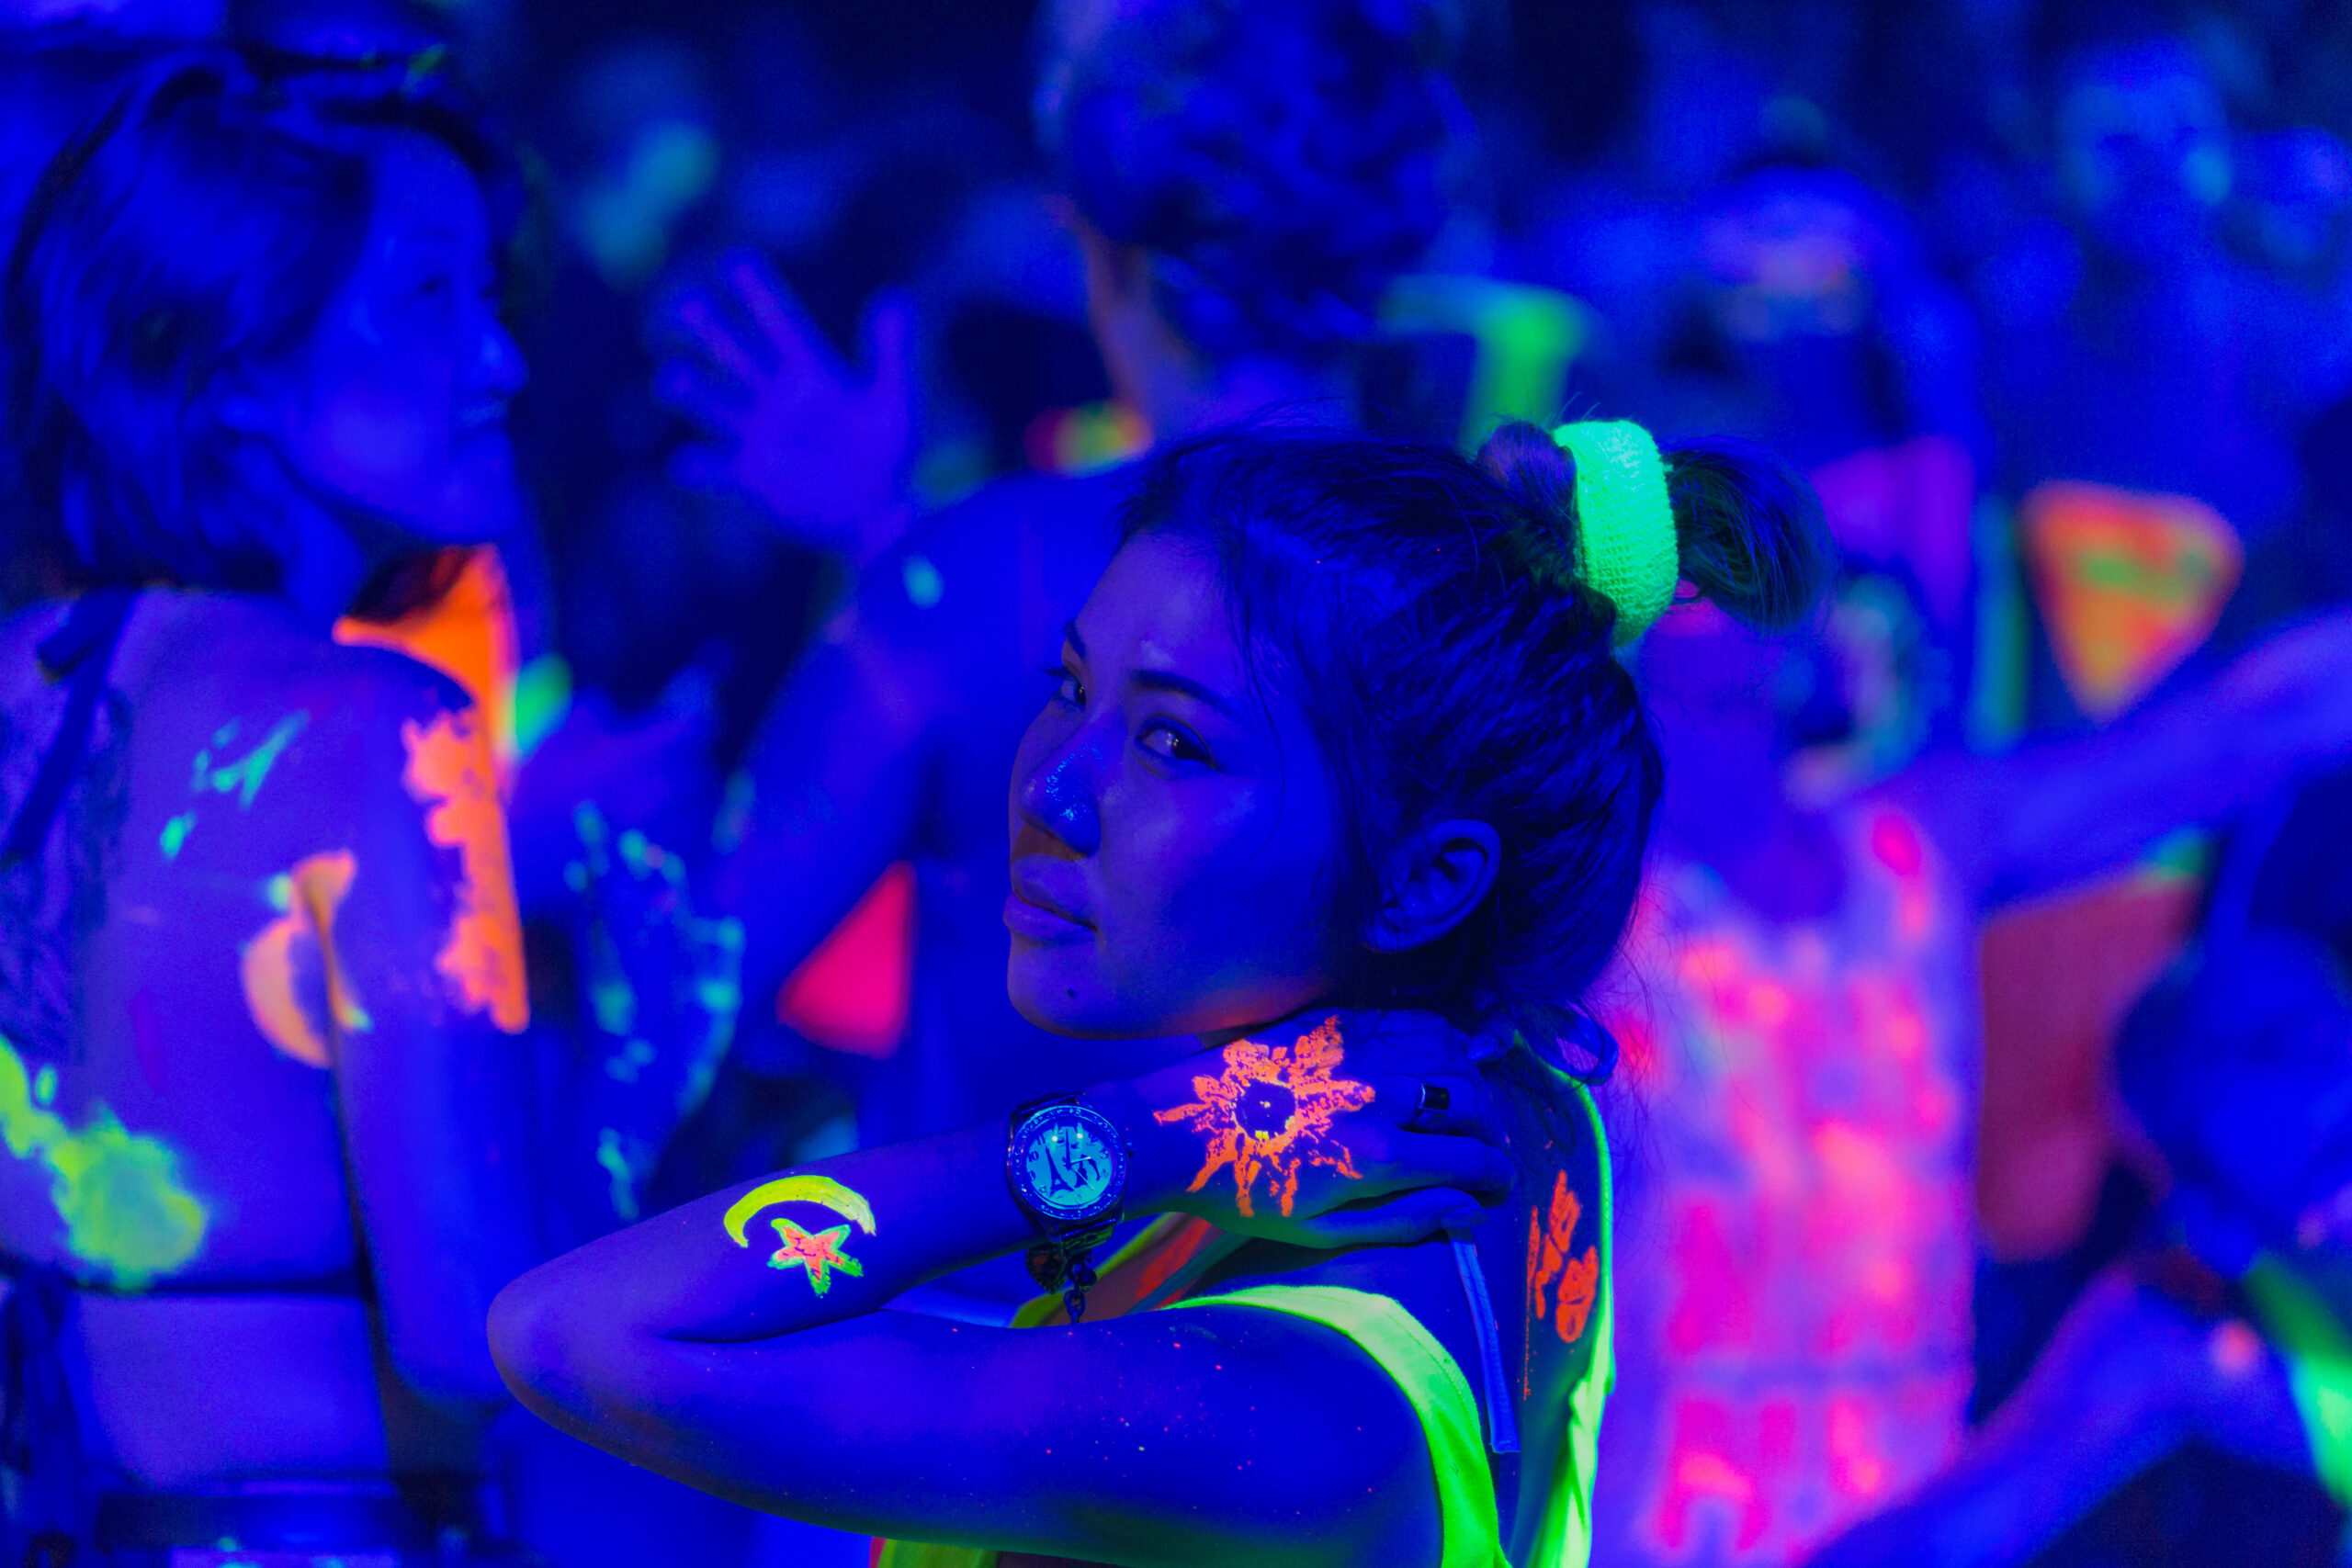 girl at full moon party event